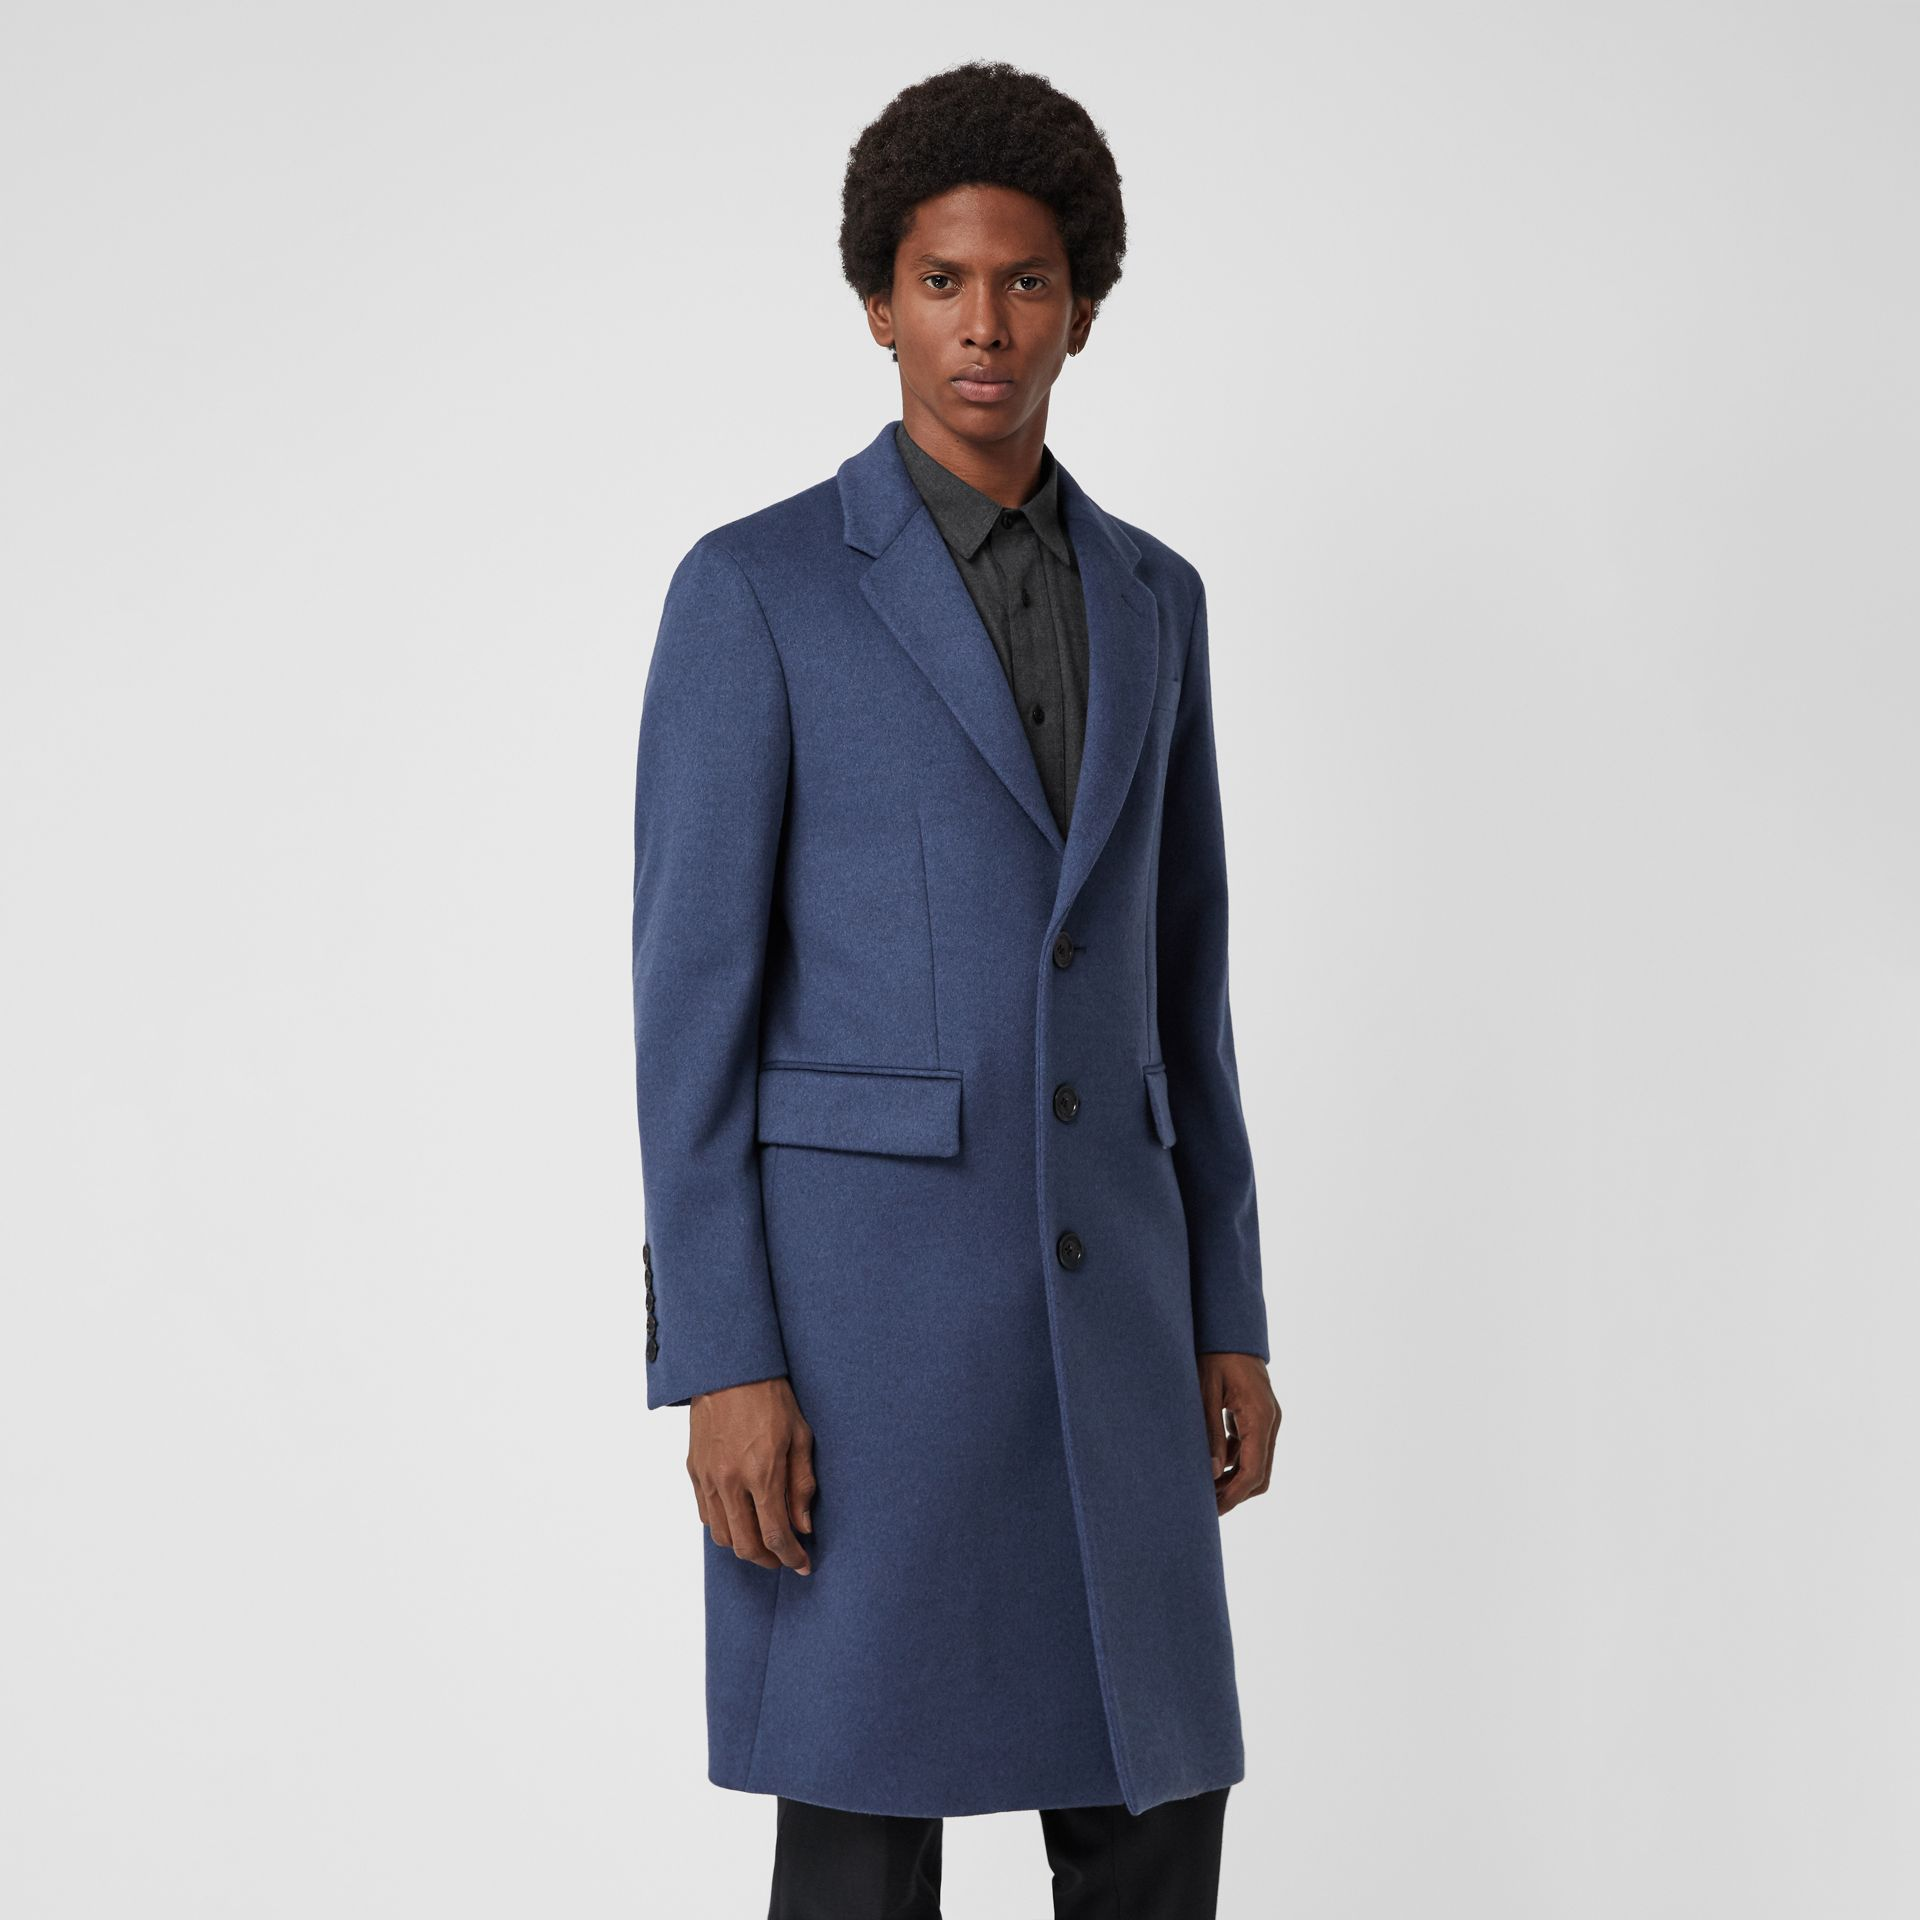 Wool Cashmere Tailored Coat in Dark Canvas Blue - Men | Burberry - gallery image 4